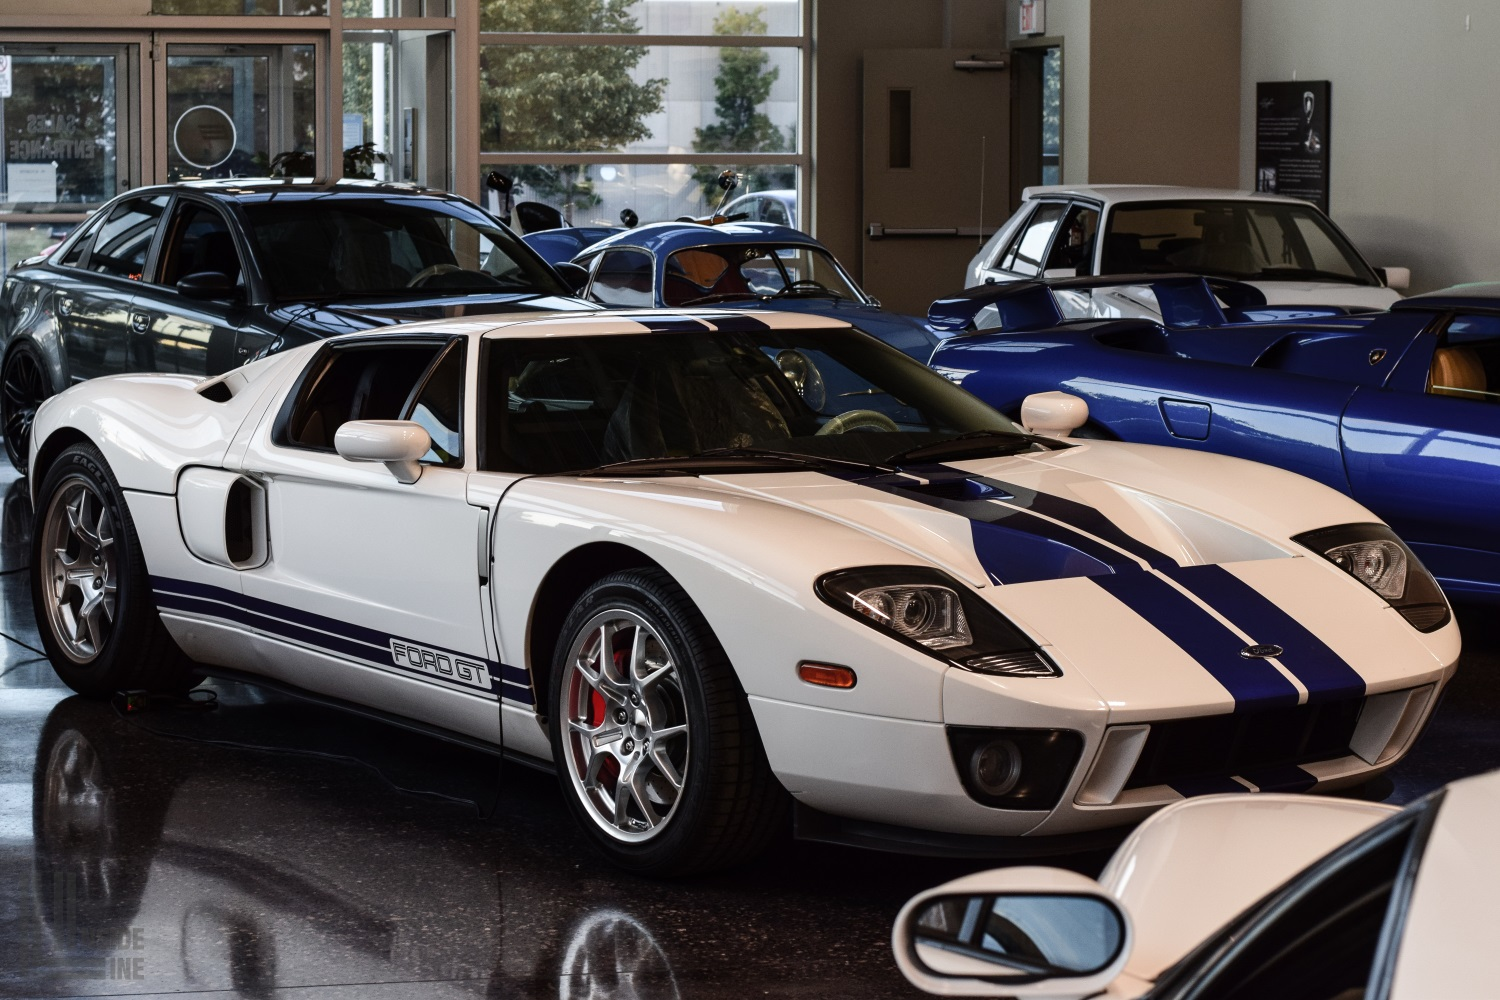 Ford Gt For Sale At Engineered Automotive In Toronto